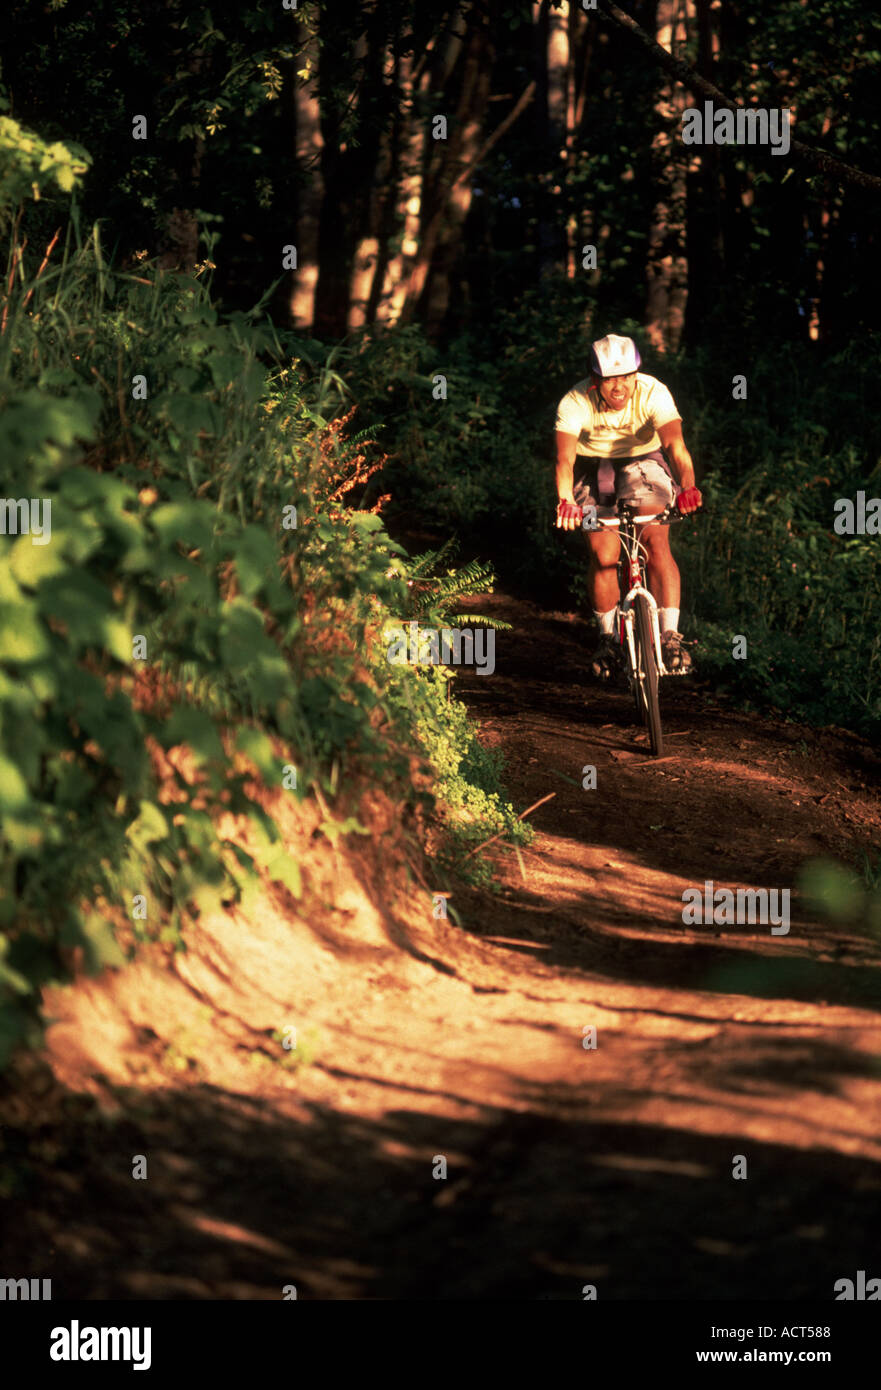 Mountain biker racing on trail - Stock Image